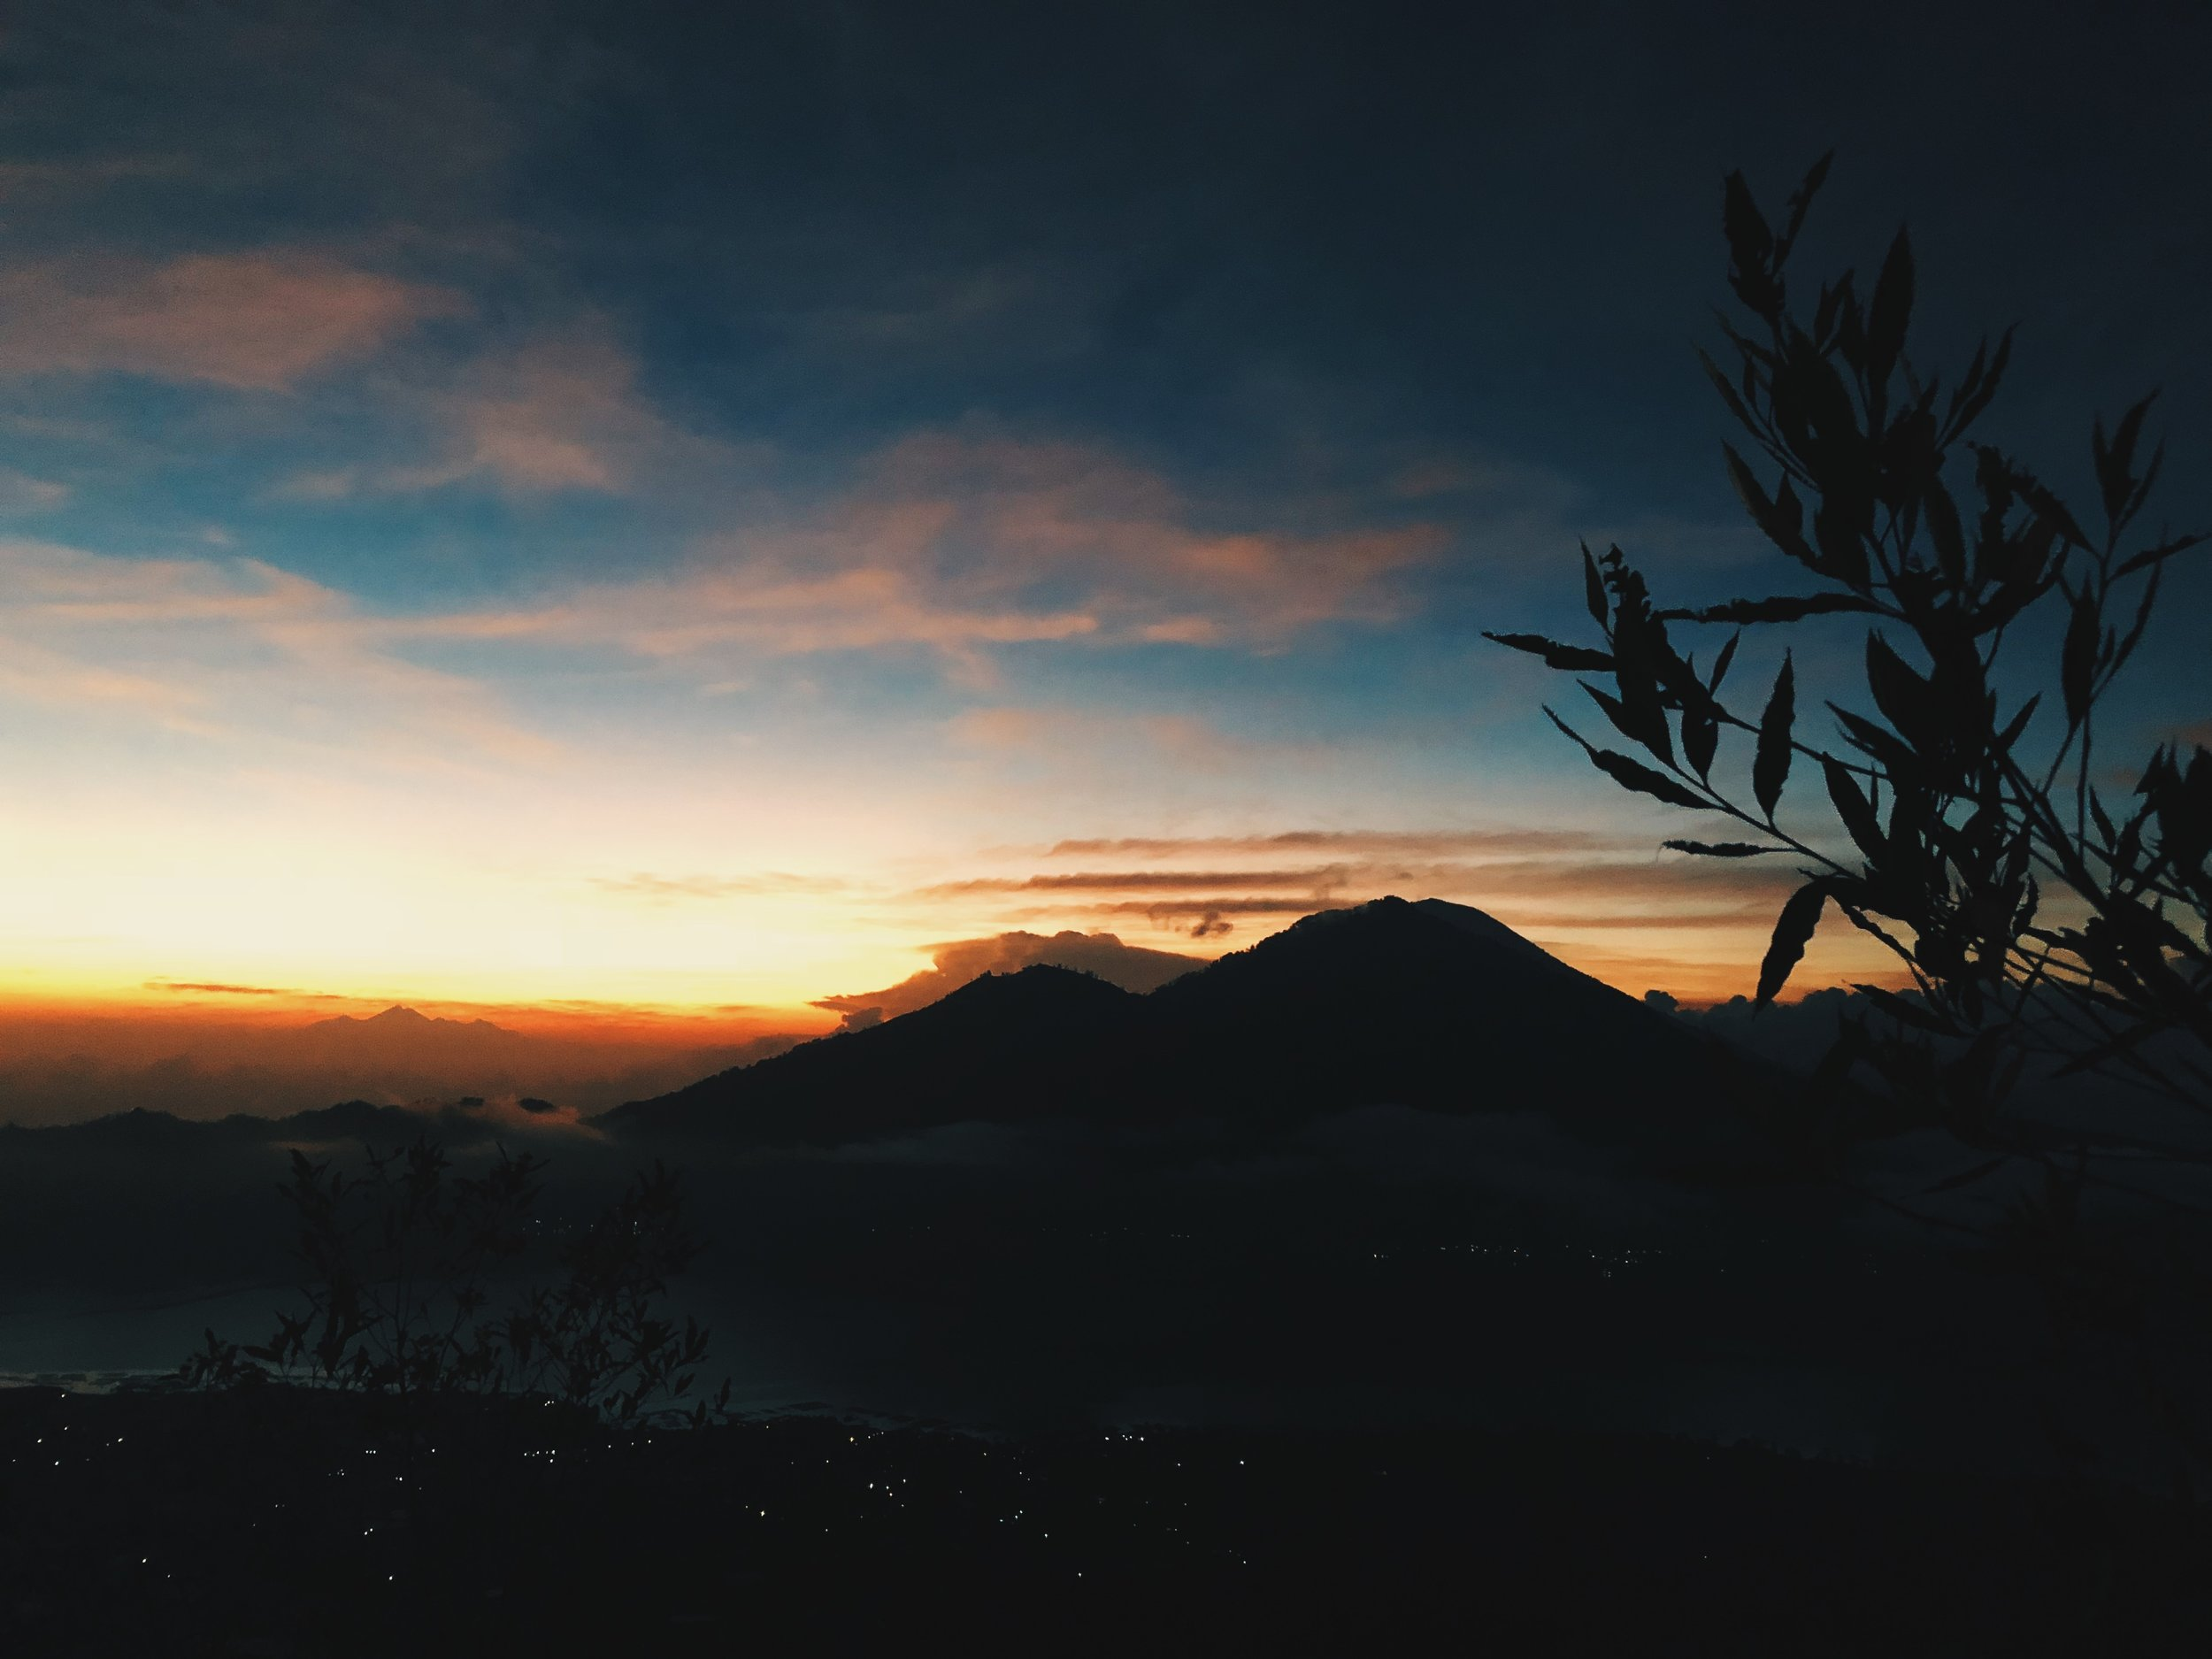 Sunrise Trek on Mount Batur